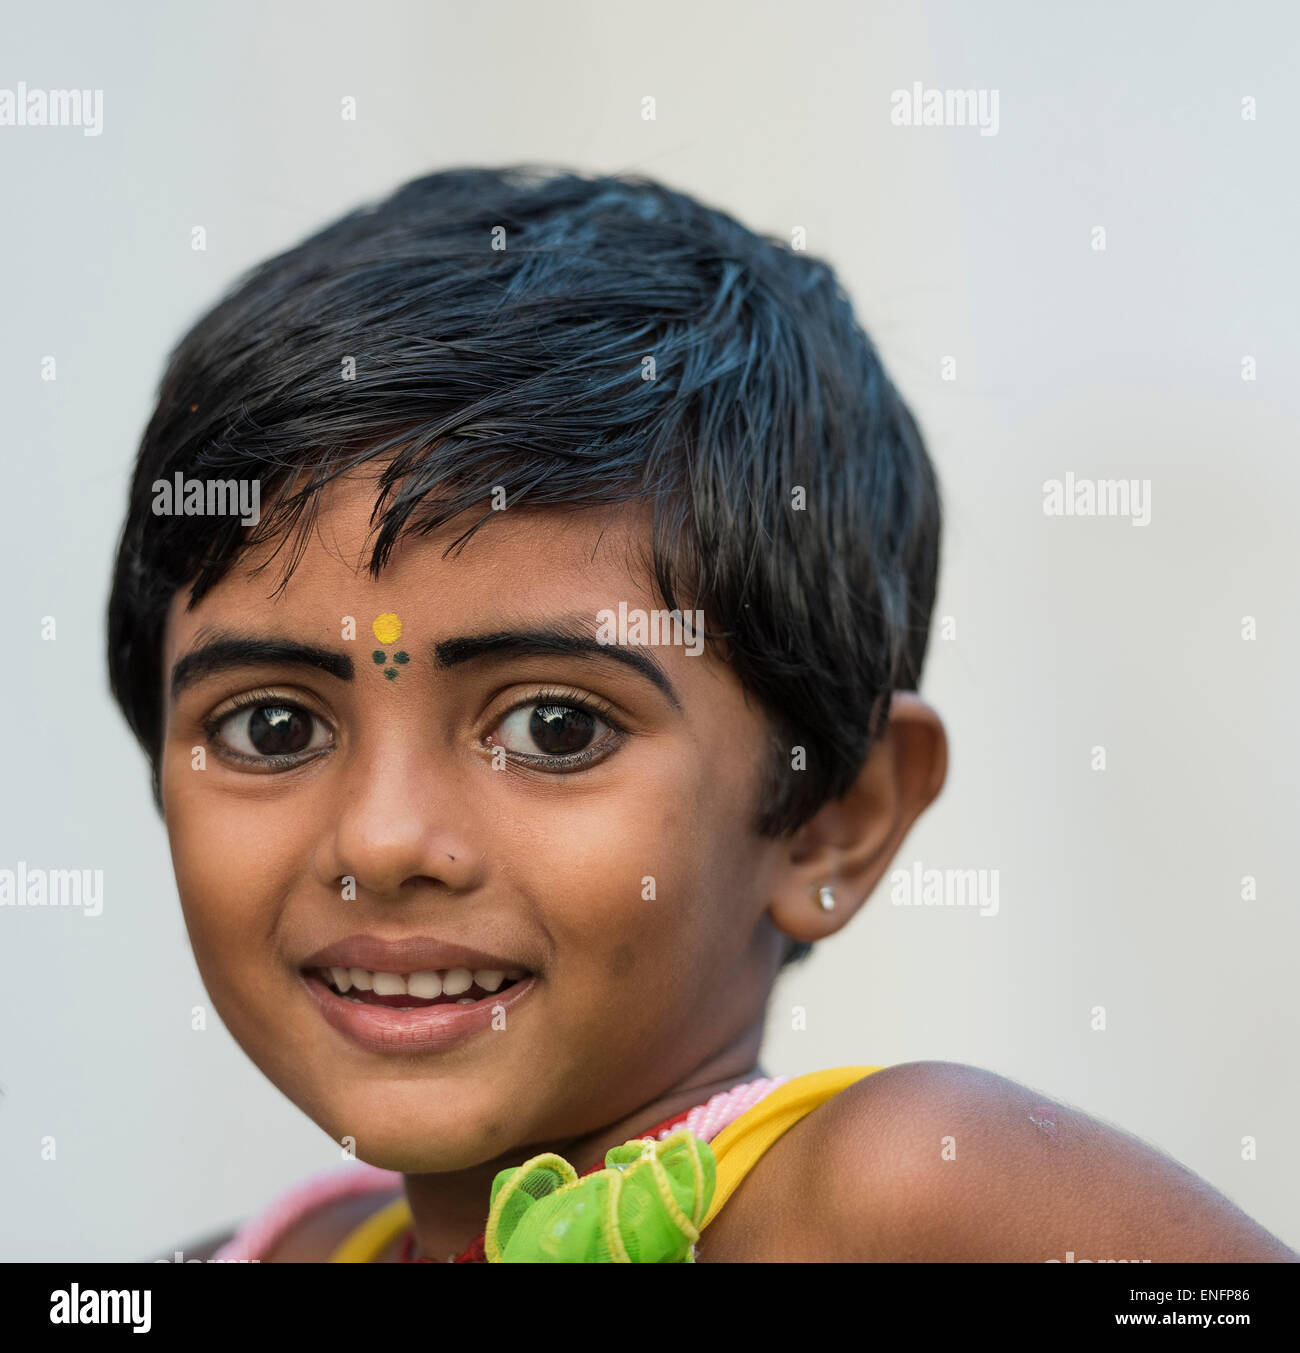 Girl with yellow bindi on the forehead and kohl-rimmed eyes, portrait, Fort Cochin, Kochi, Kerala, India - Stock Image